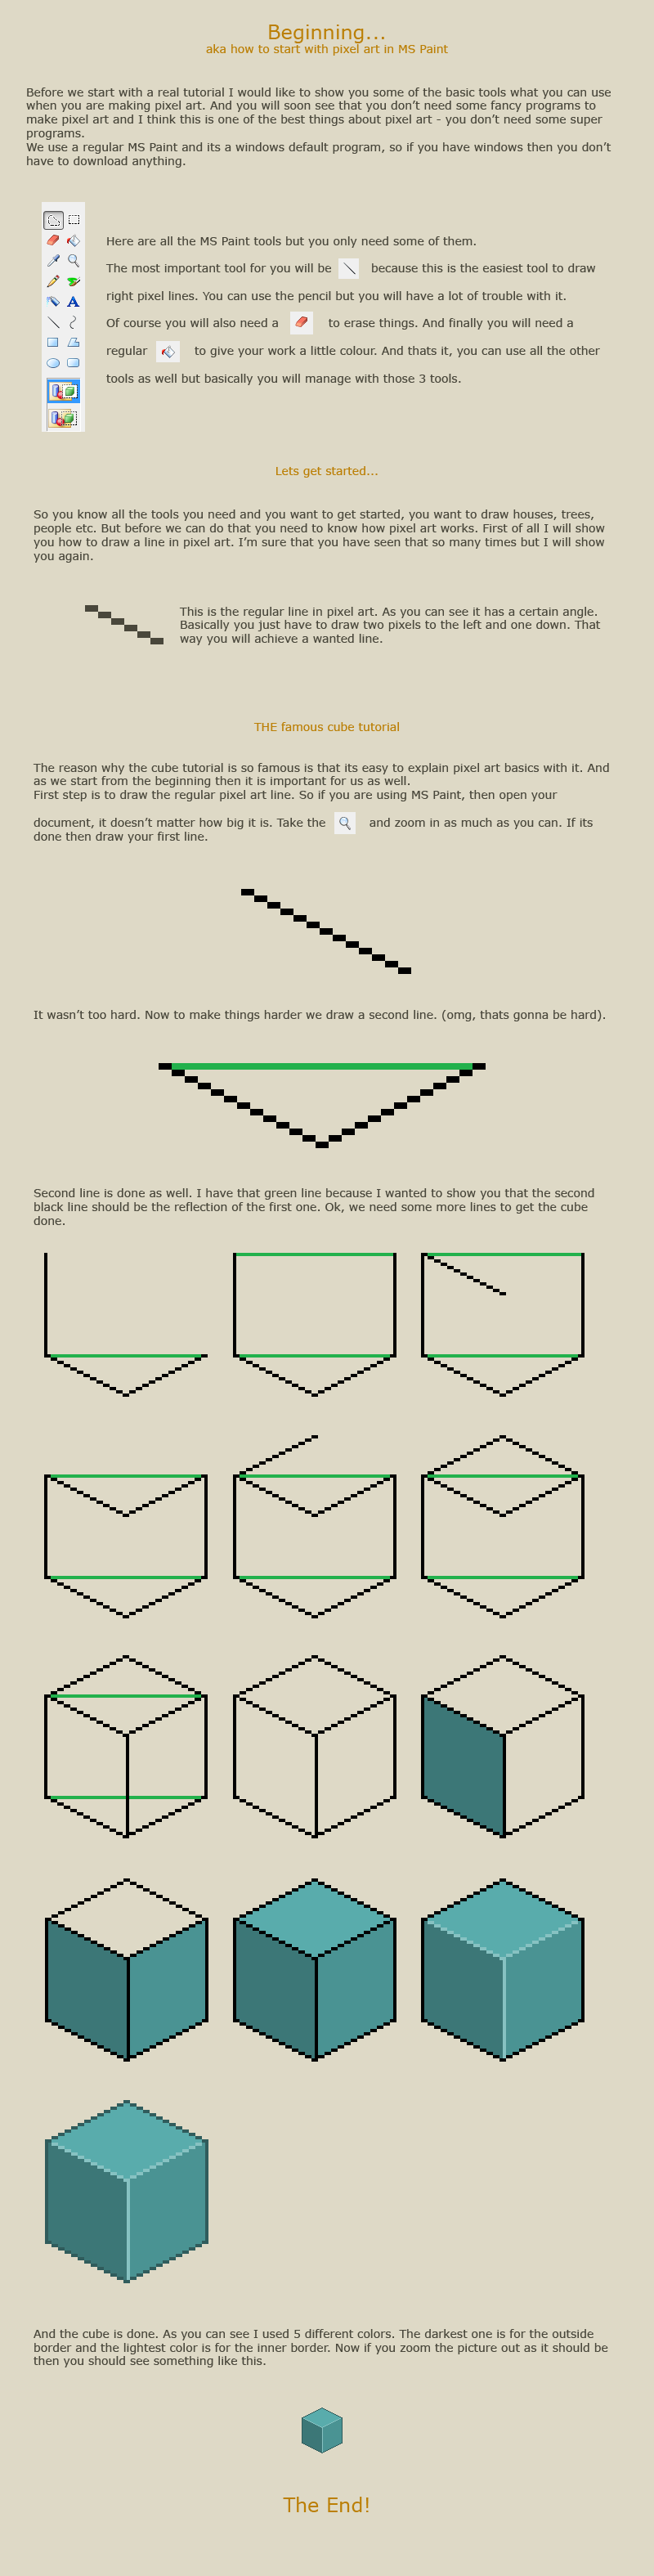 How to start with pixel art by on